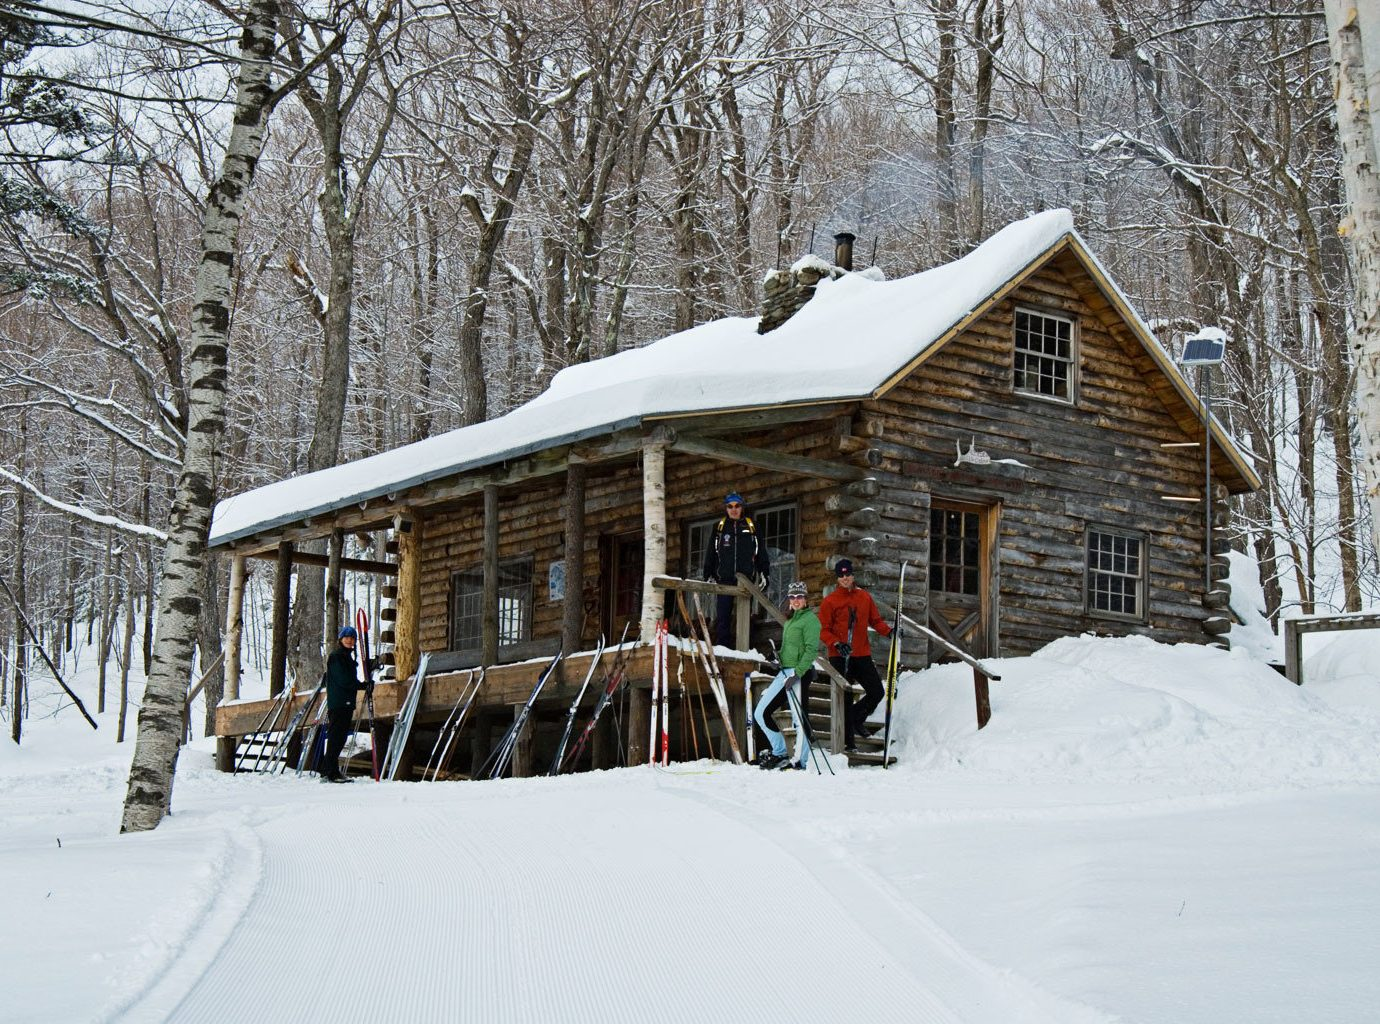 Country Family Lodge Mountains Outdoor Activities Outdoors Ski Trip Ideas Weekend Getaways snow tree outdoor Winter skiing weather house Nature season sugar house log cabin blizzard nordic skiing